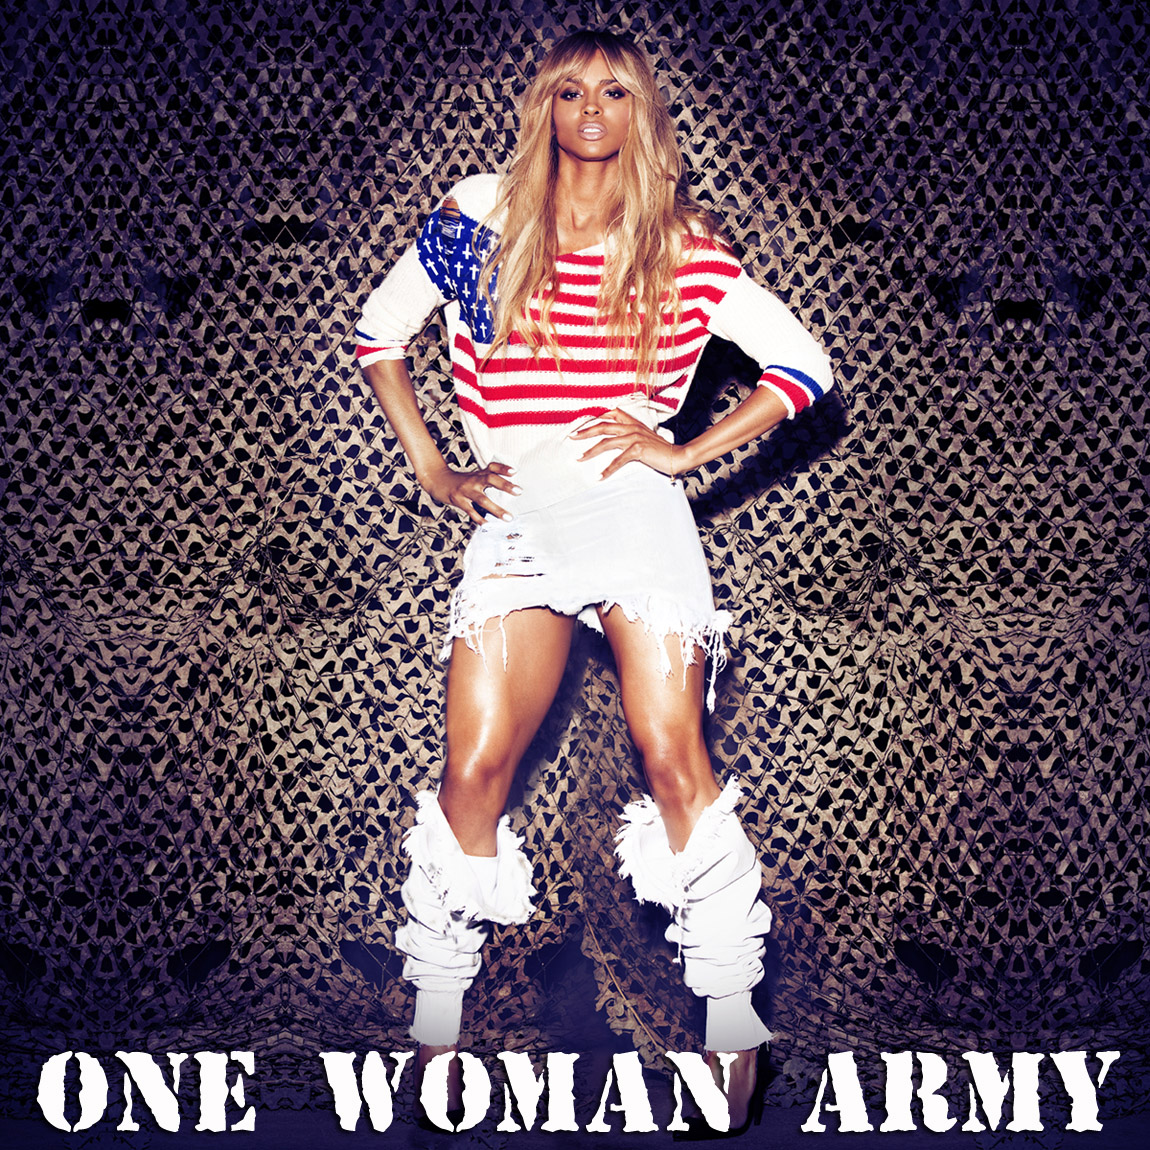 Ciara Is 'One Woman Army' In New Promo Pics